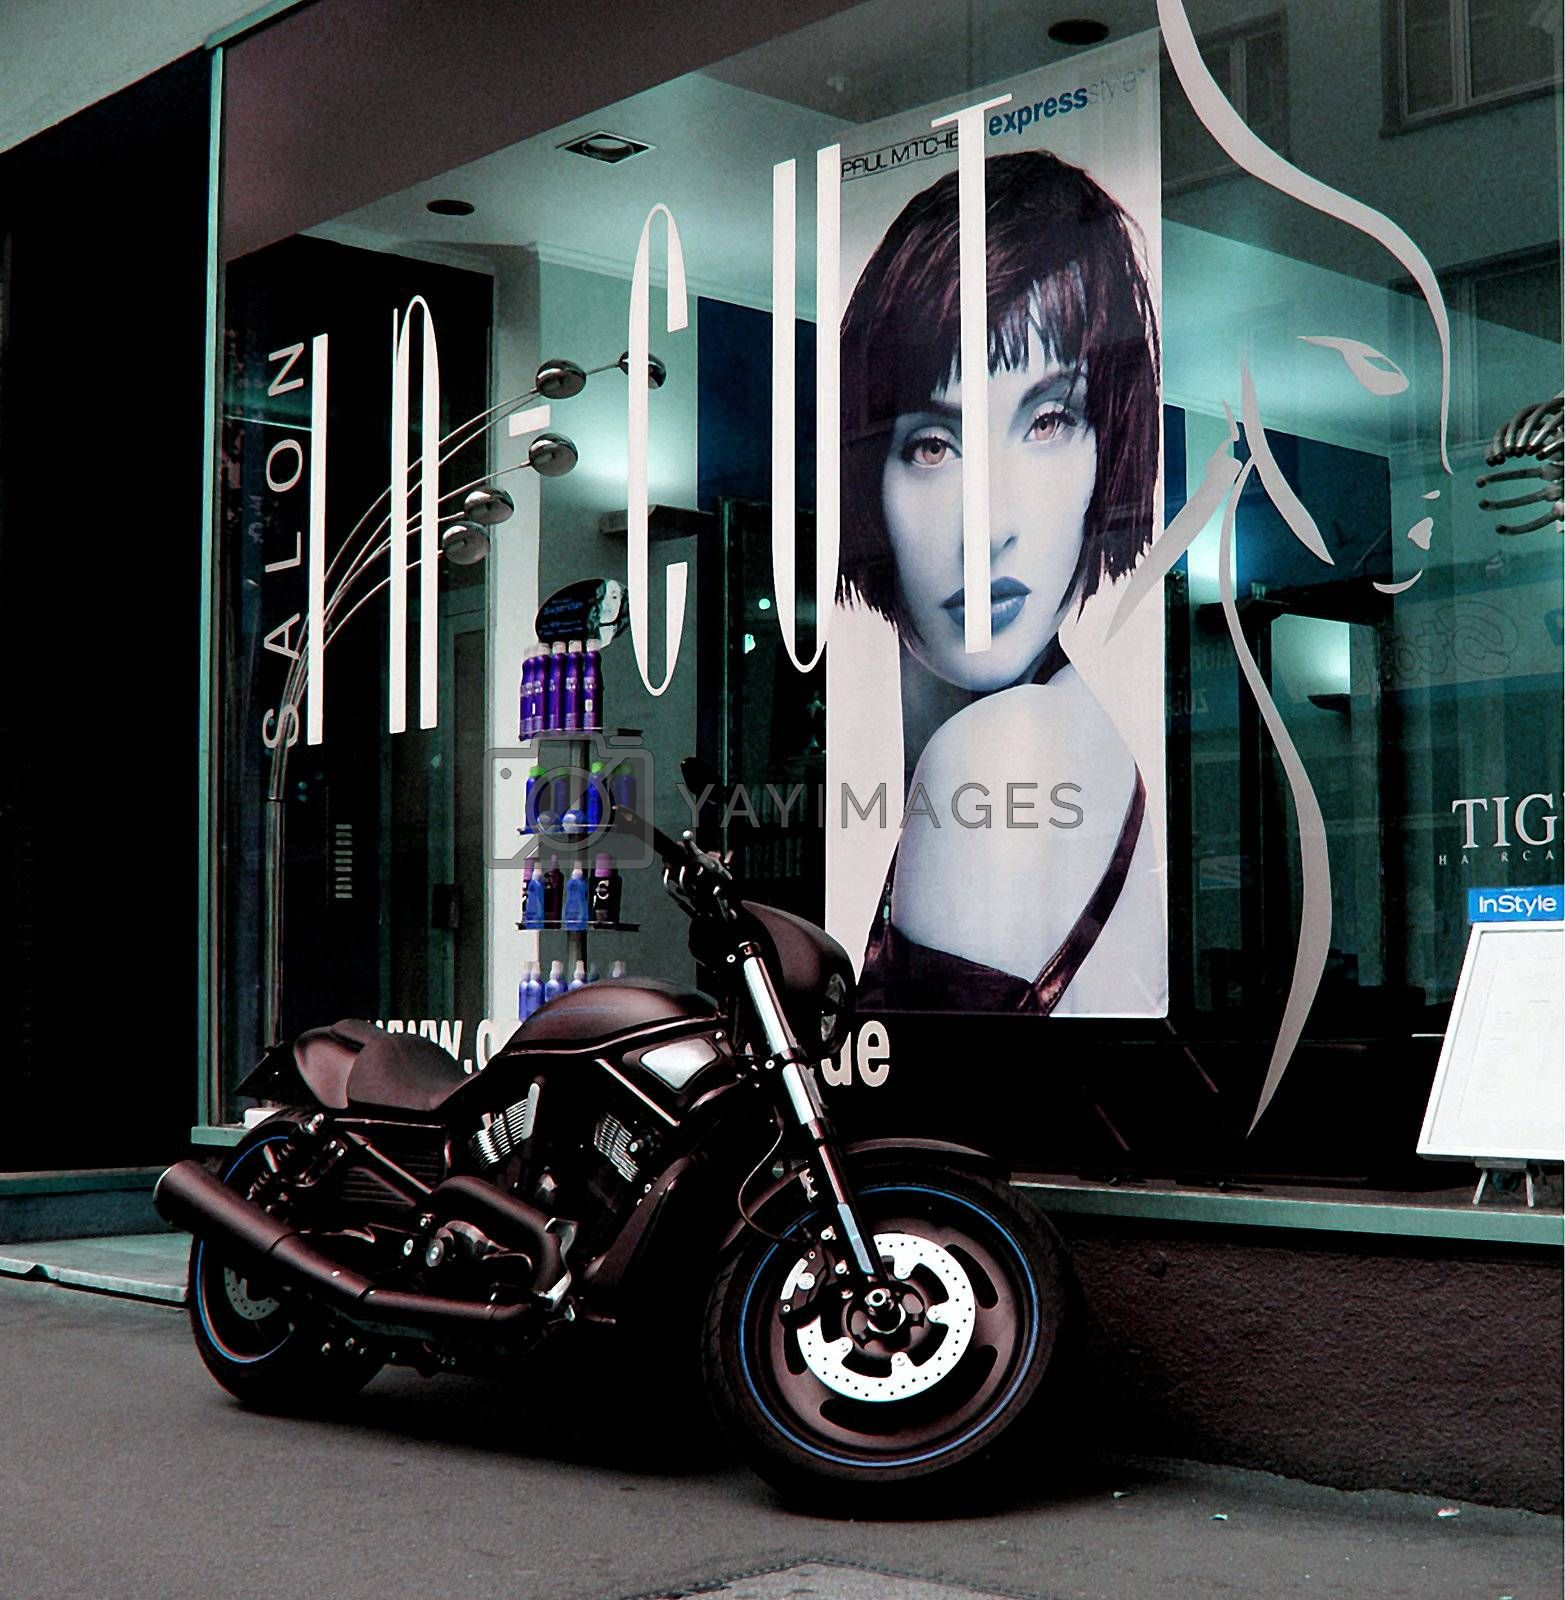 Shopping street in downtown Mainz with a motorcycle at a shop window.